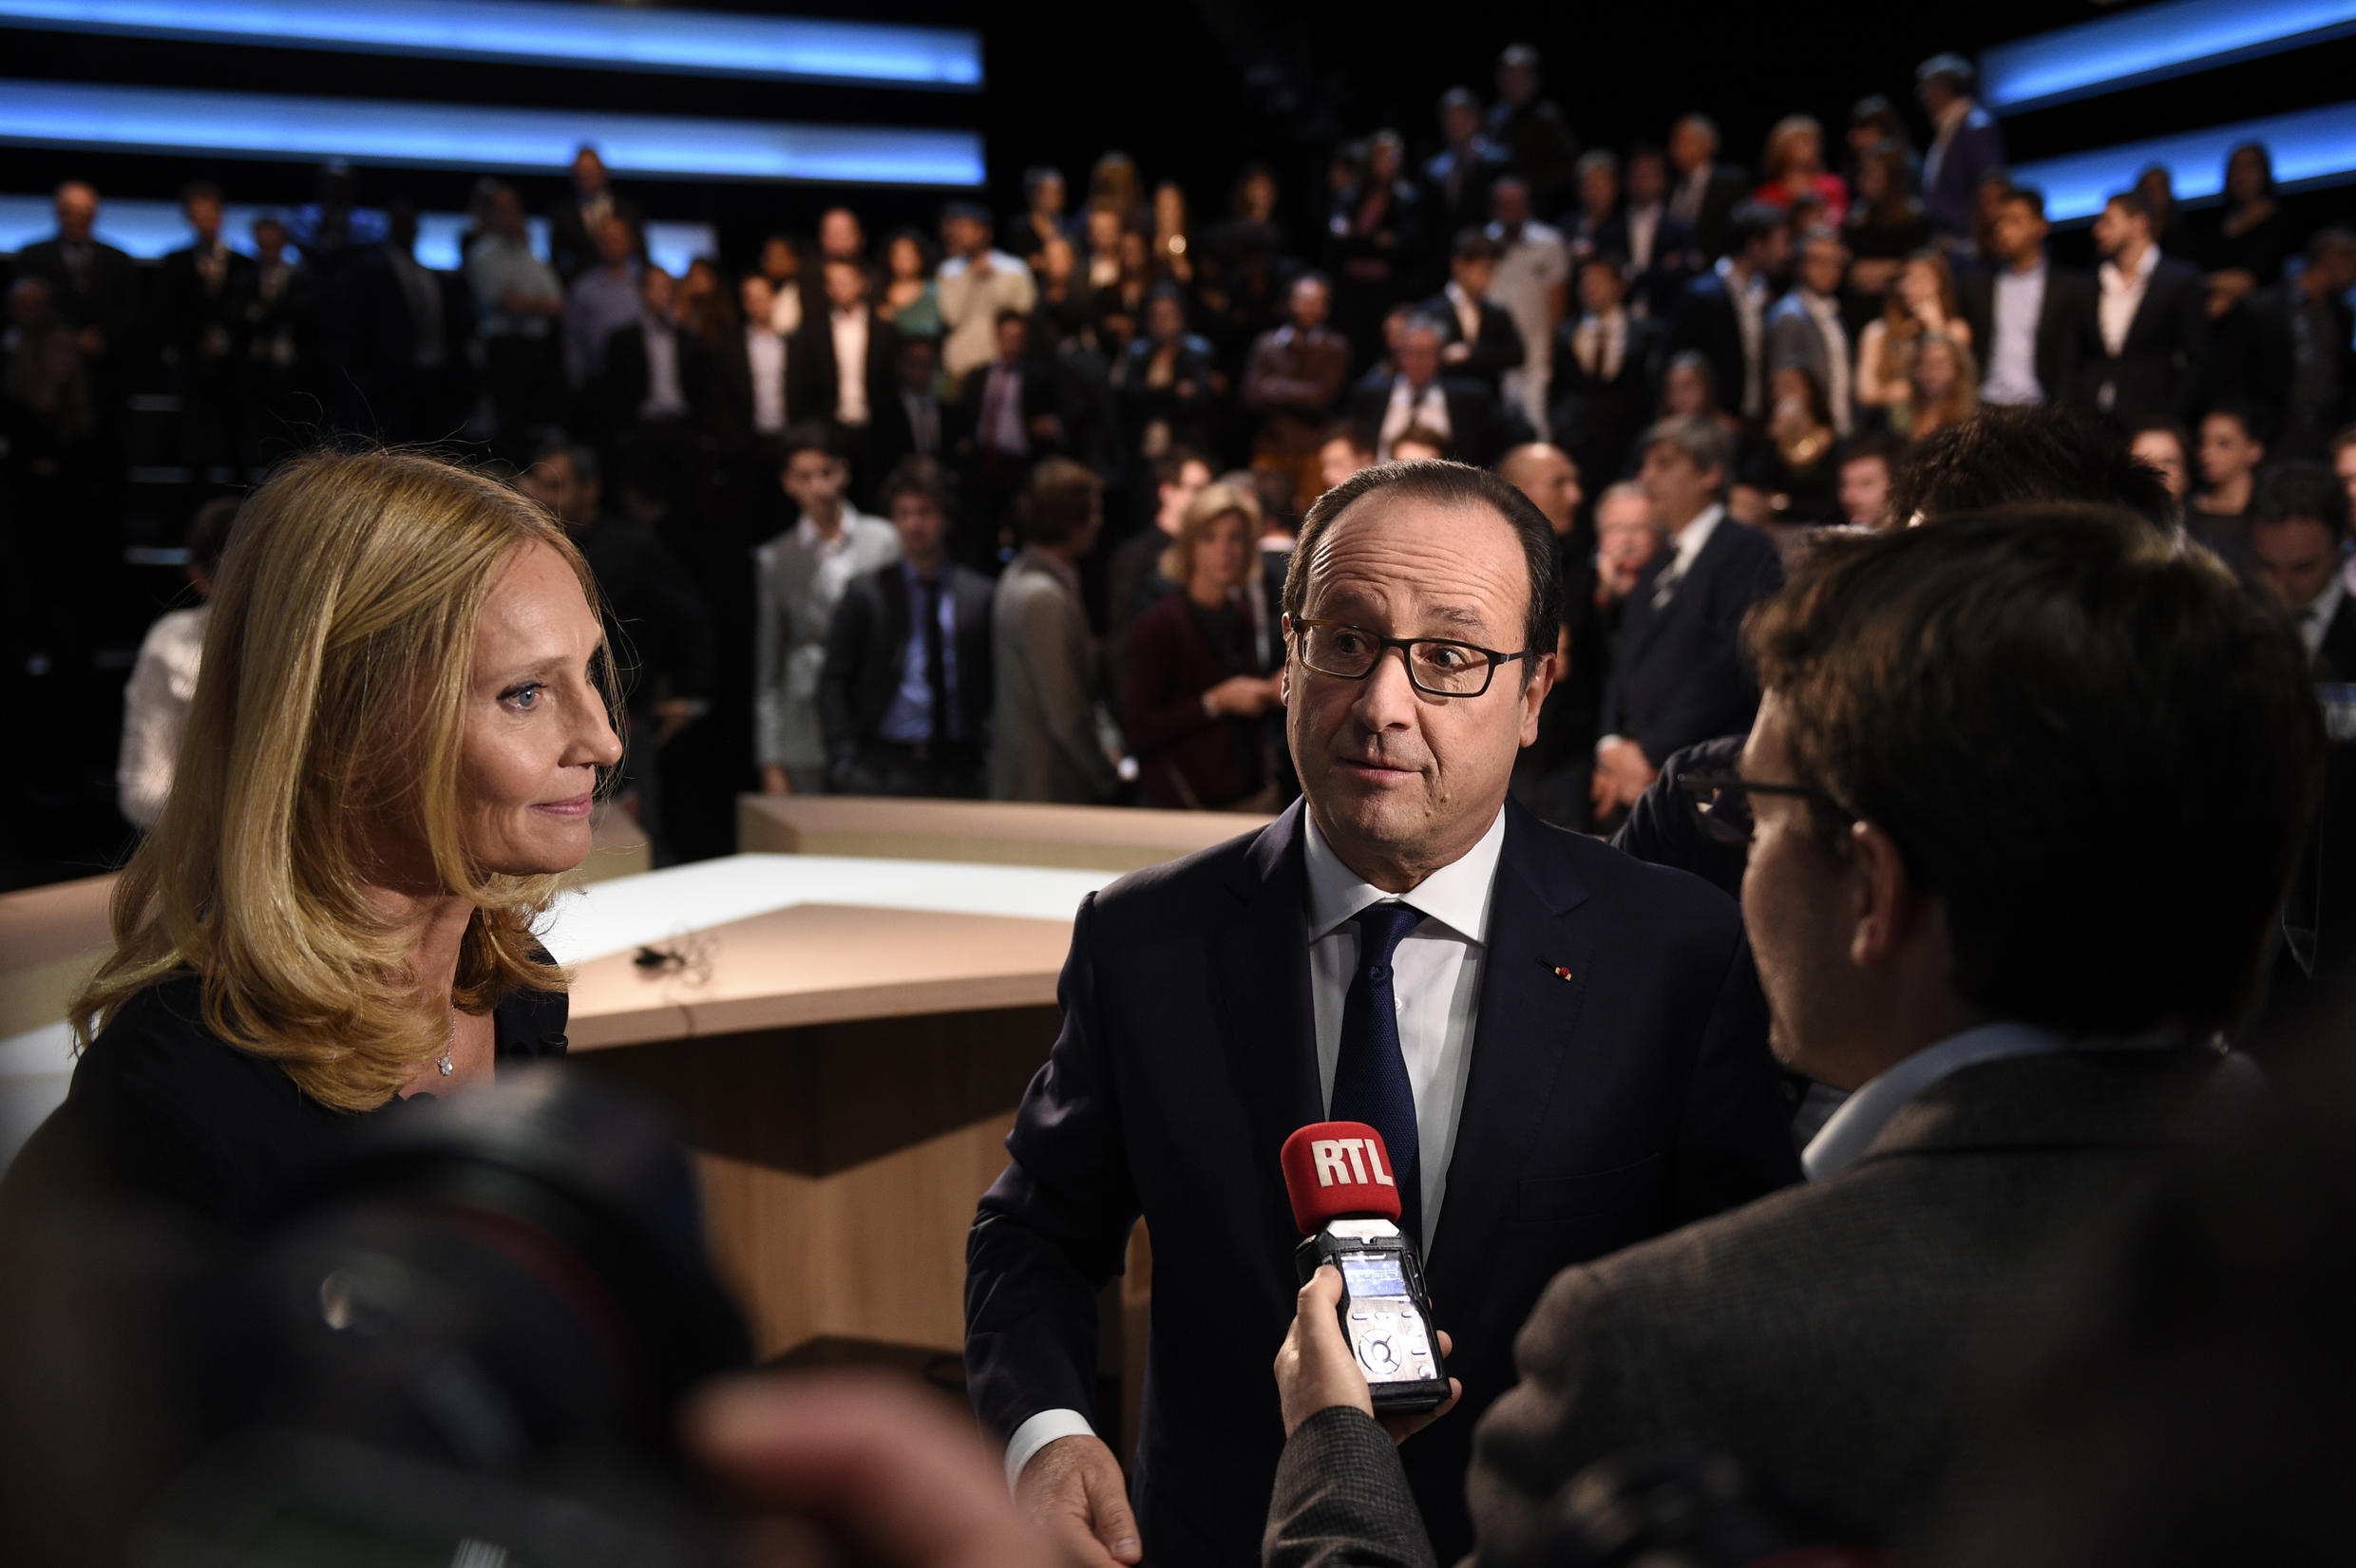 François Hollande faced four members of the public during the broadcast on the TF1 channel